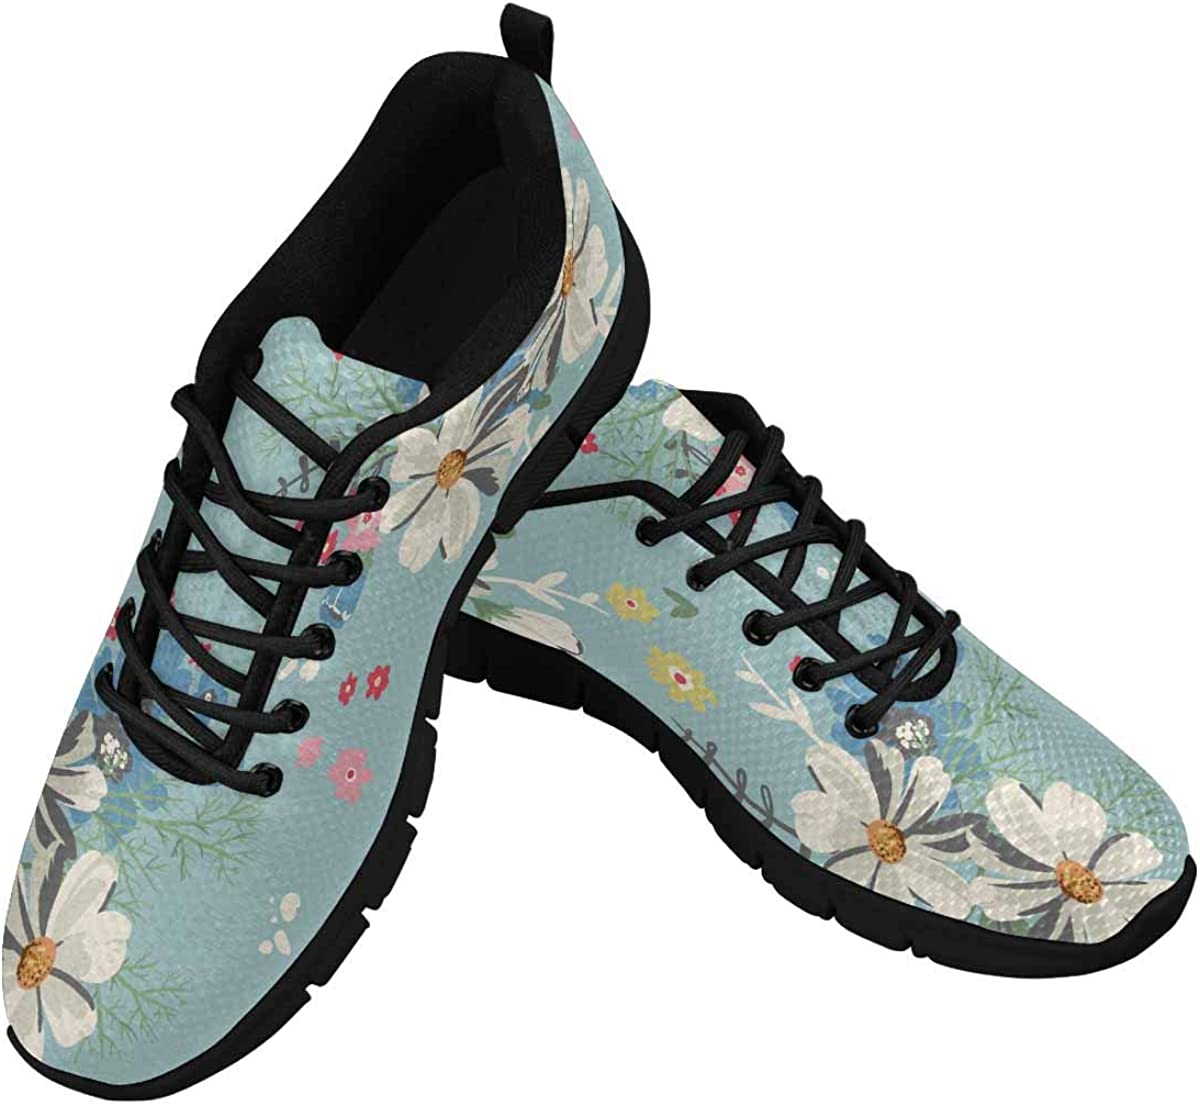 INTERESTPRINT Daisies and Other Flowers Women's Athletic Walking Shoes Casual Mesh Comfortable Work Sneakers